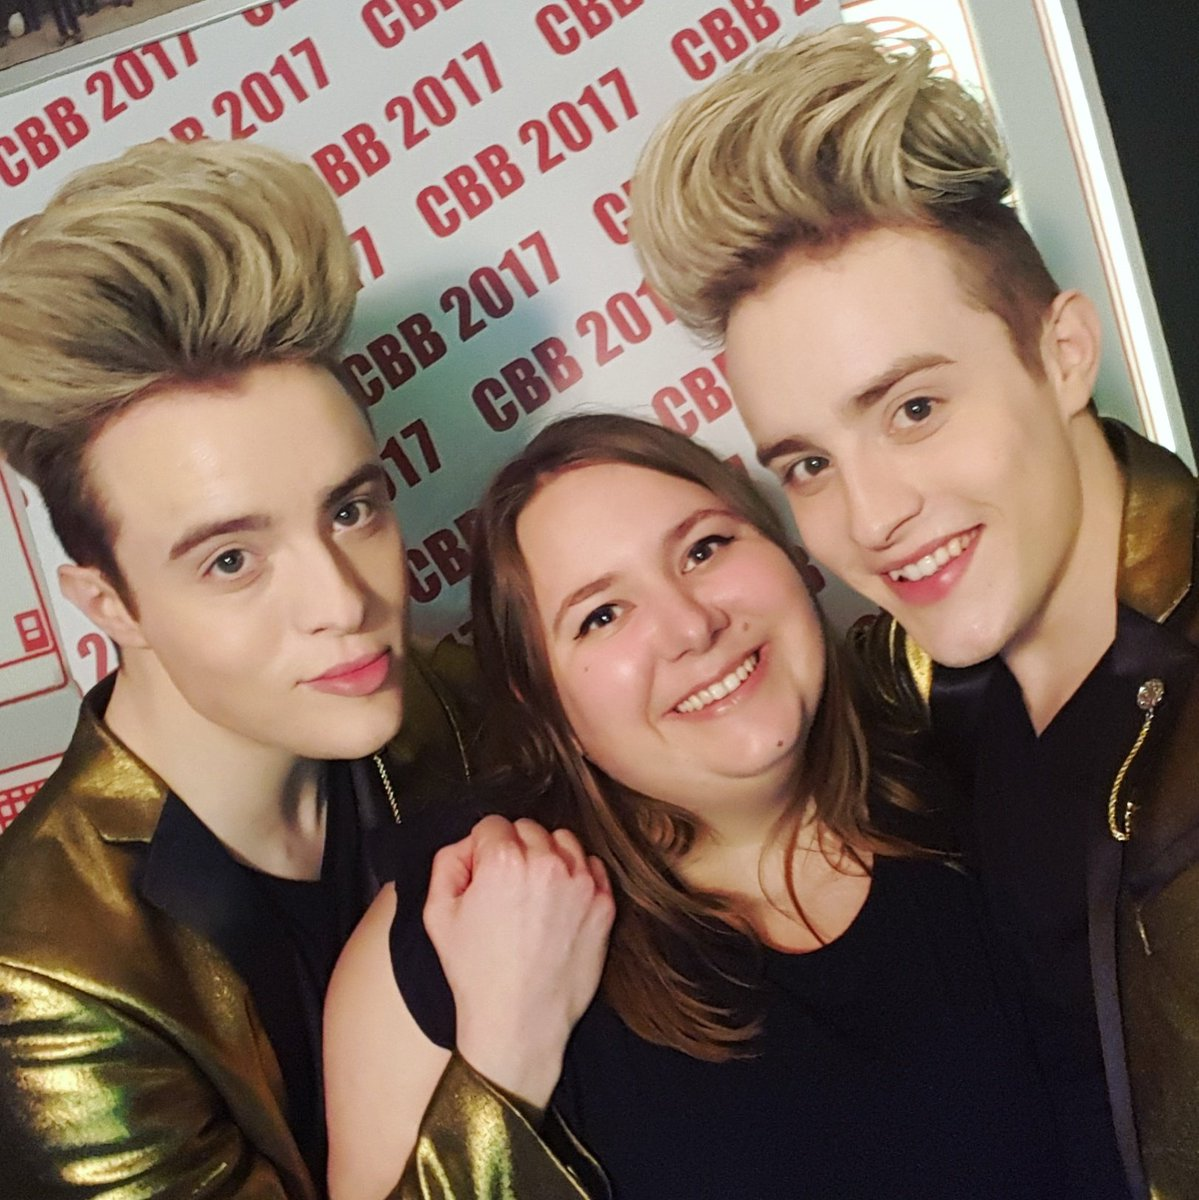 If you\'re in Dublin tonight come down to the Button Factory and party with @planetjedward! #cbb17